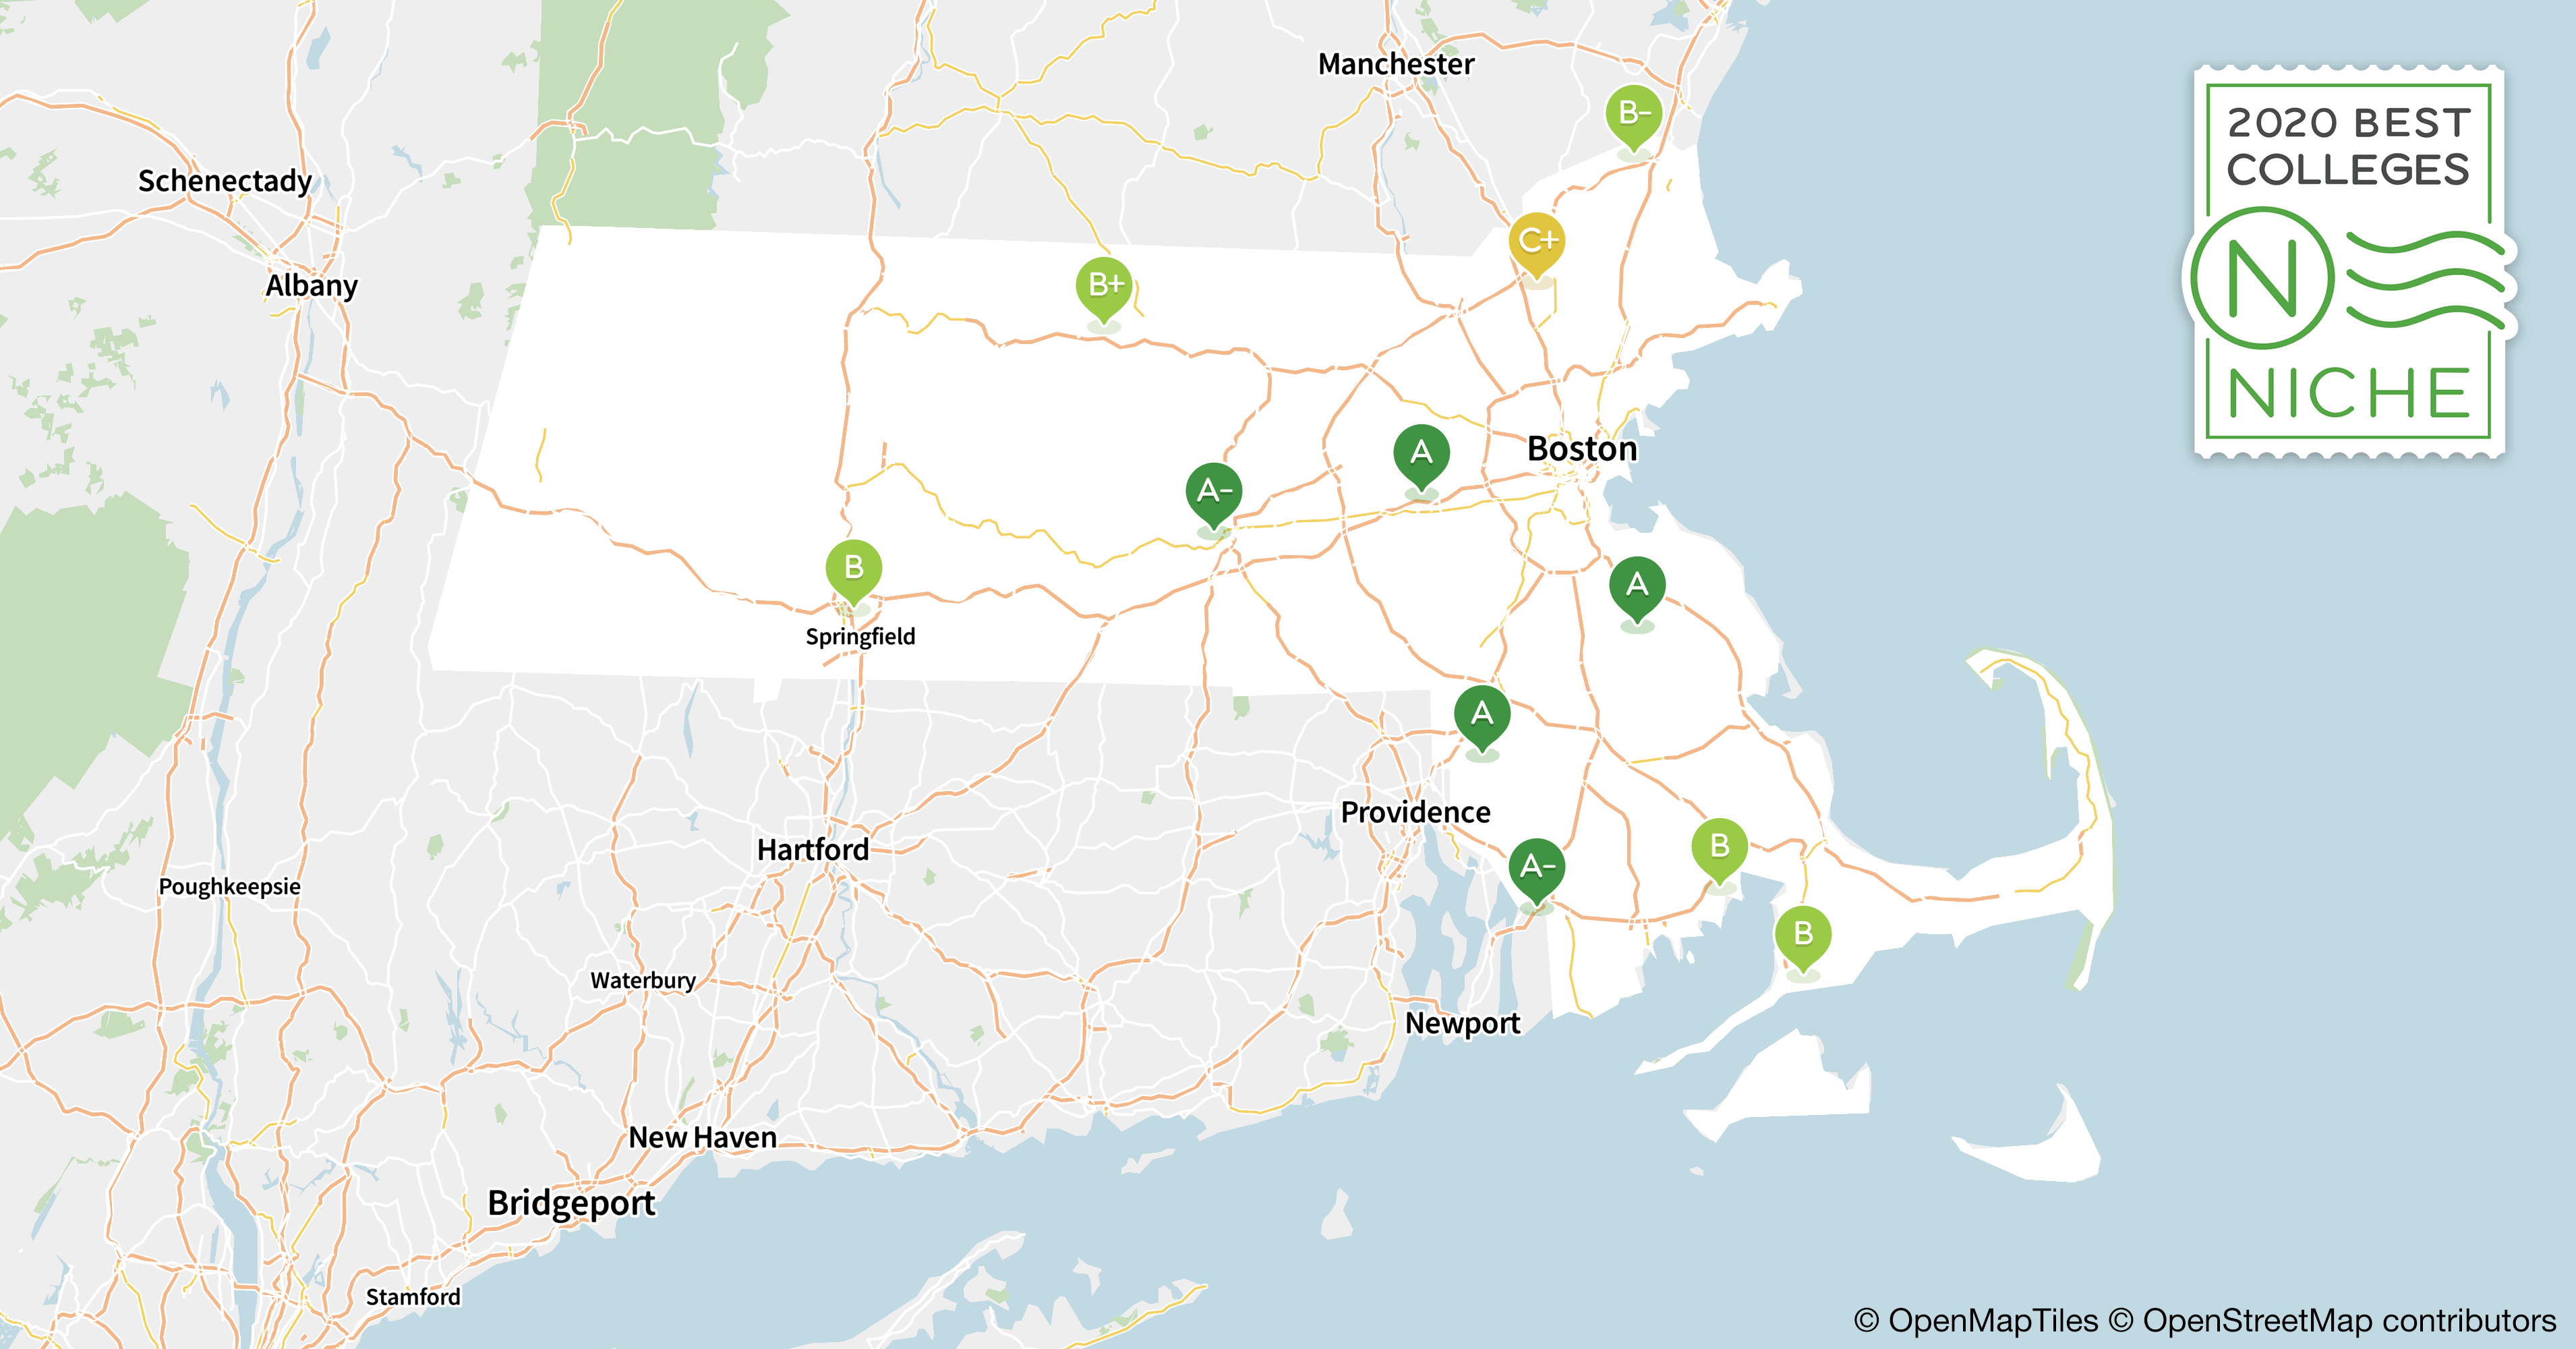 2020 Best Colleges in Massachusetts - Niche